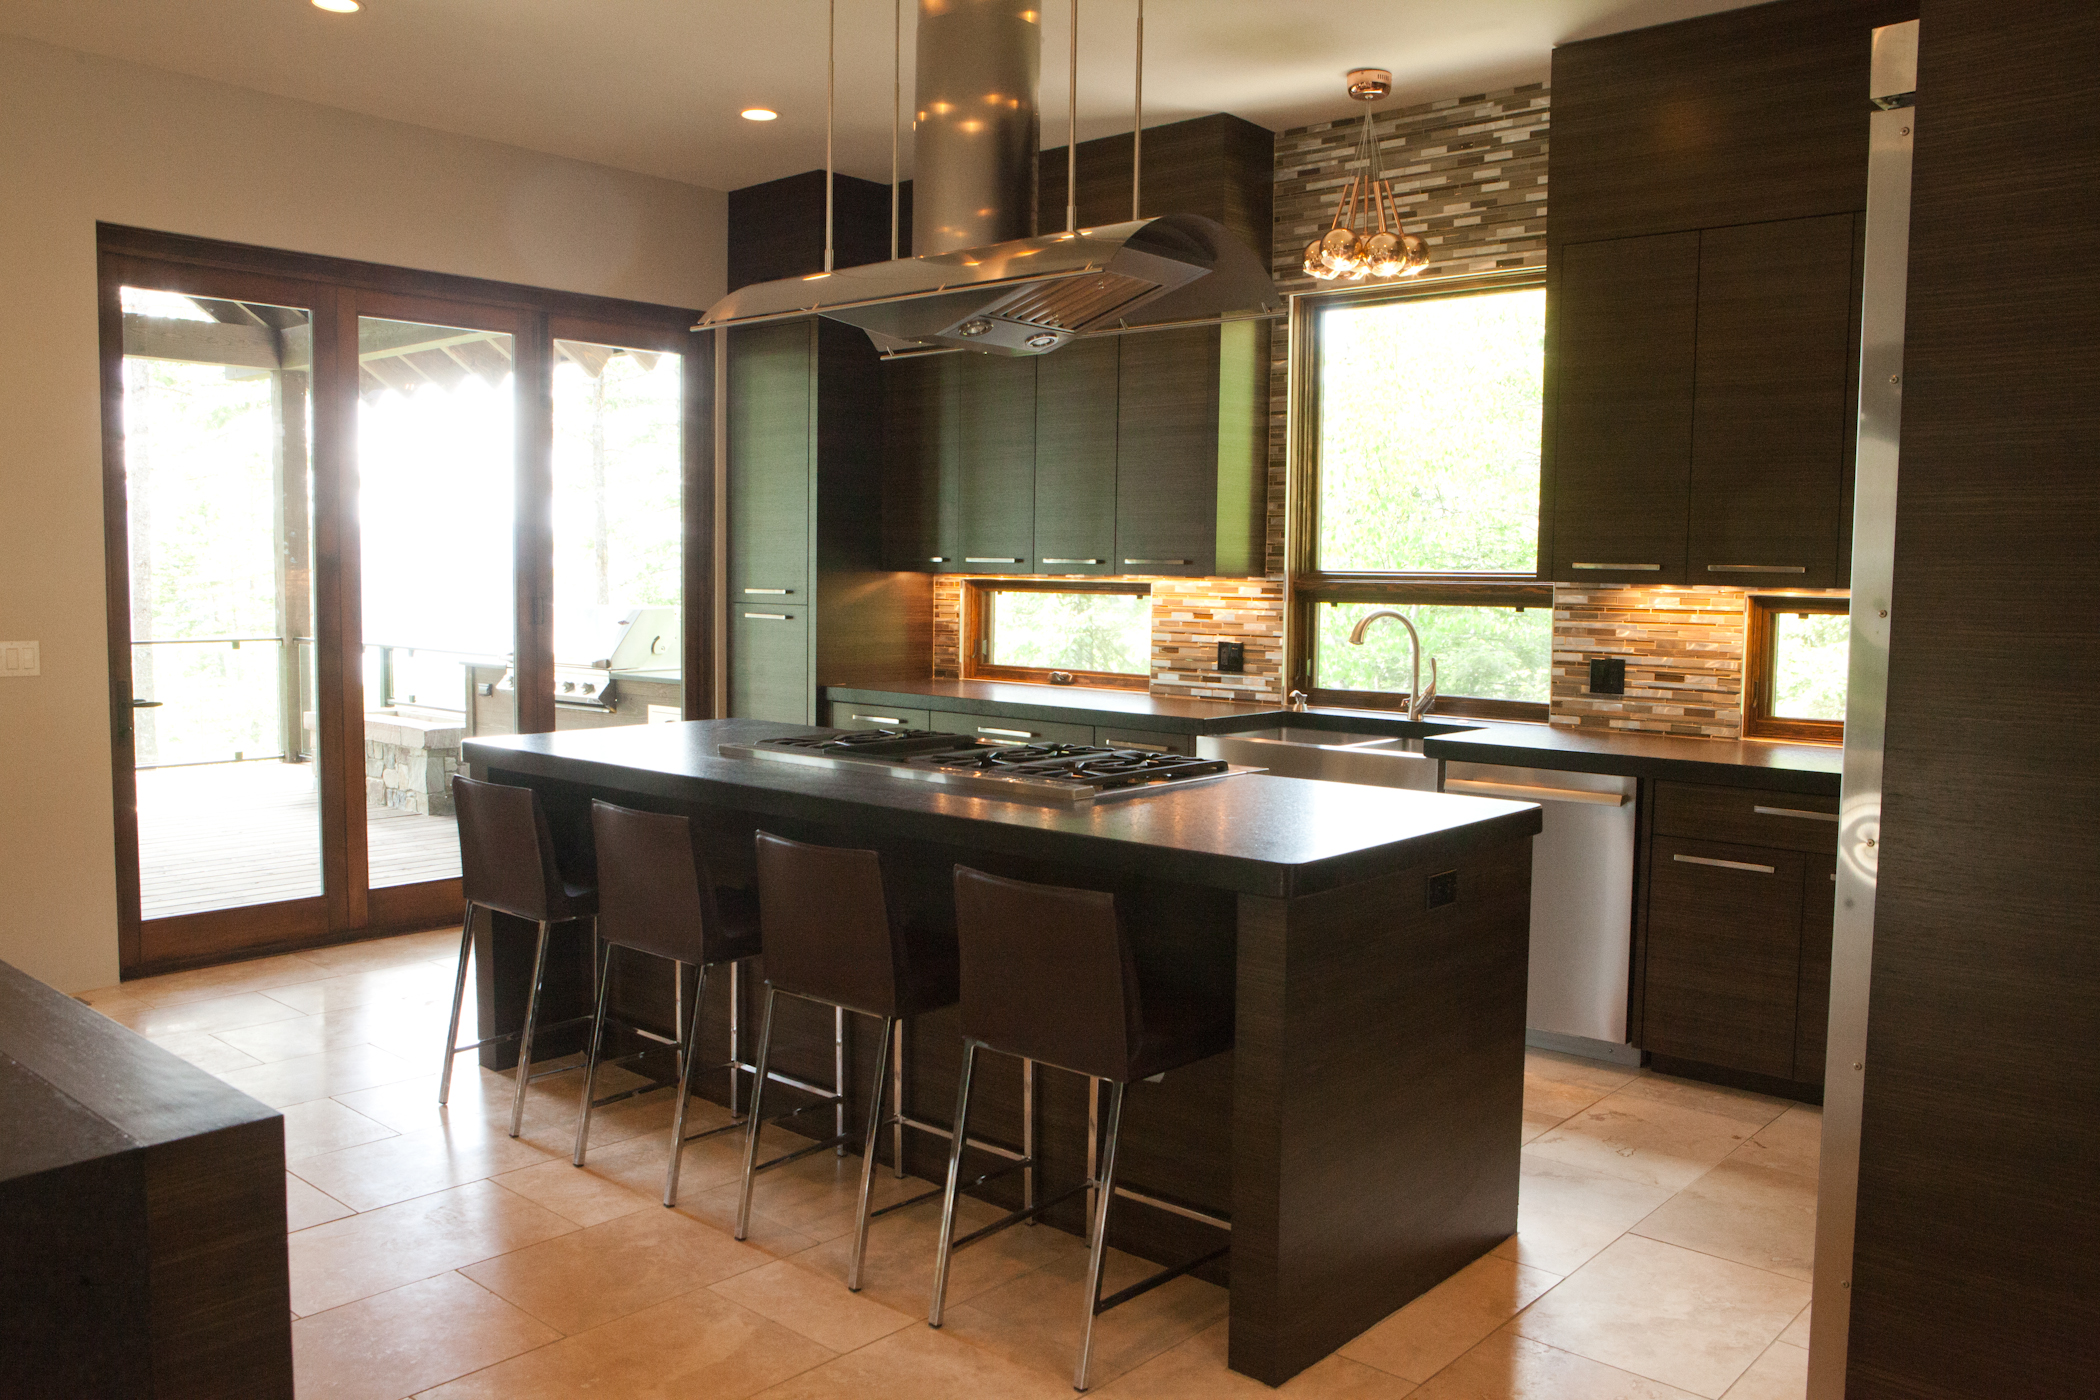 Kitchen of stone and wood. Backsplash with a view to the surrounding woods.